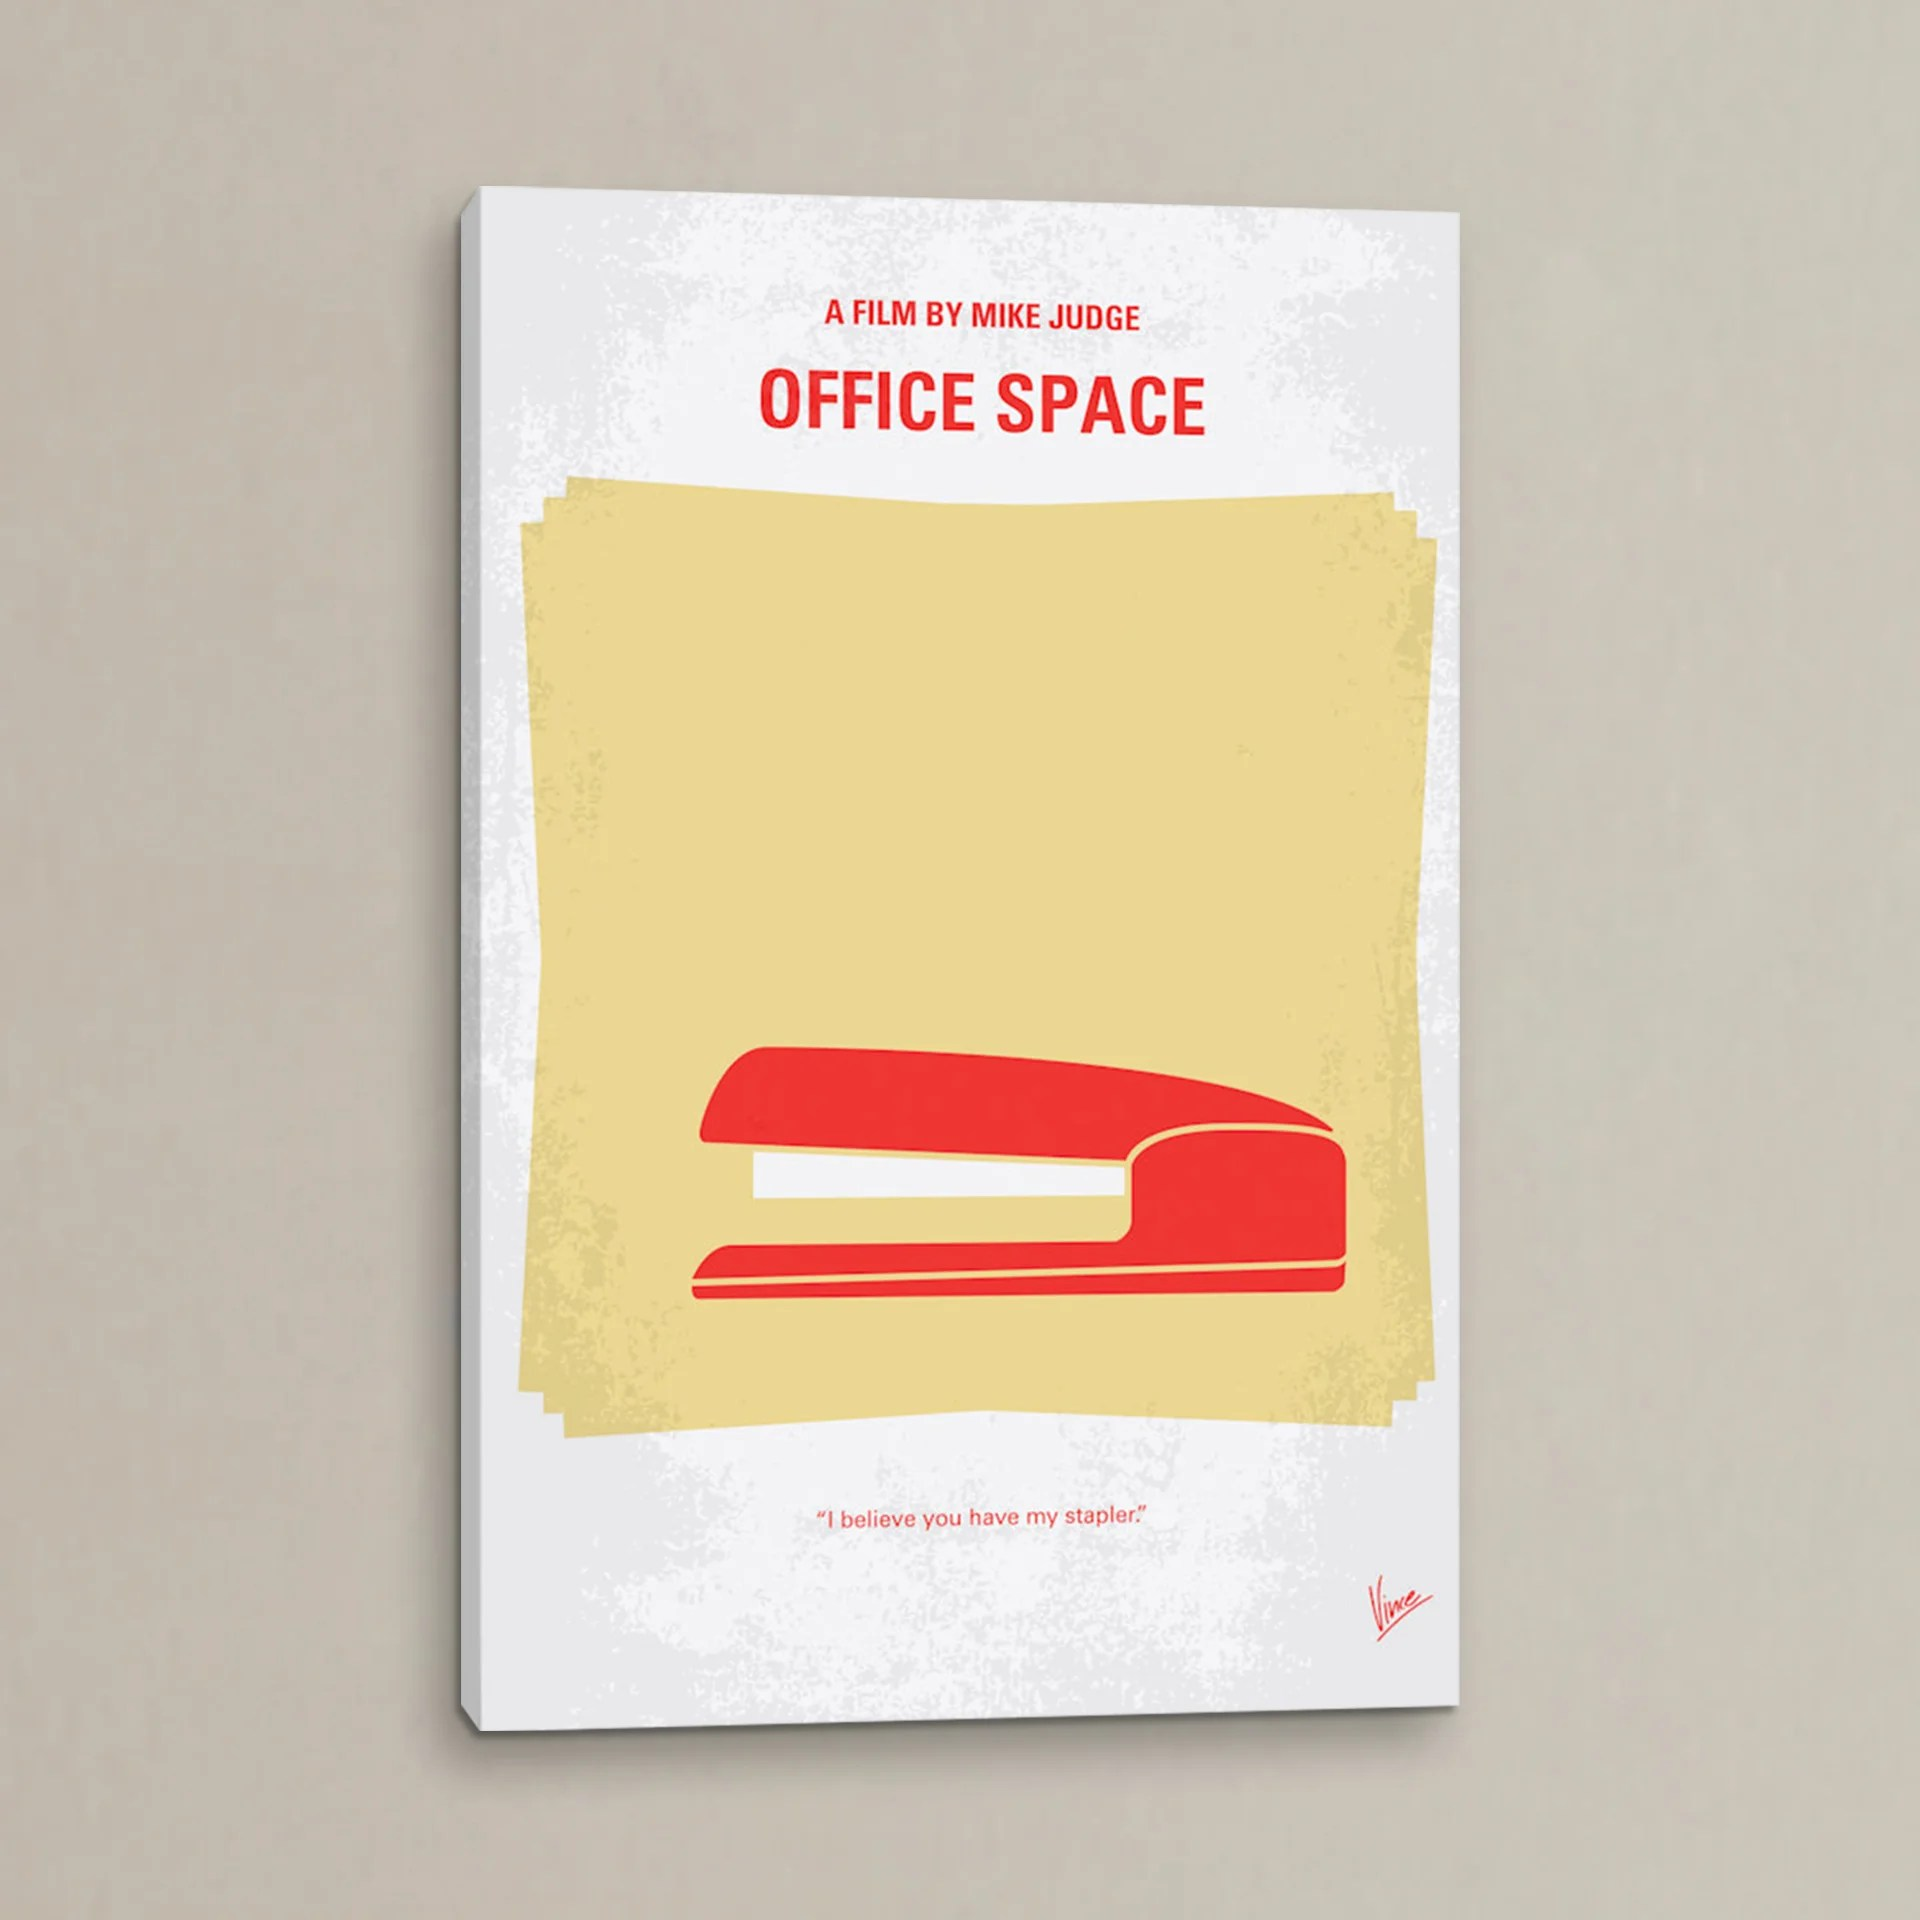 Wall Art For Office Space - Elitflat